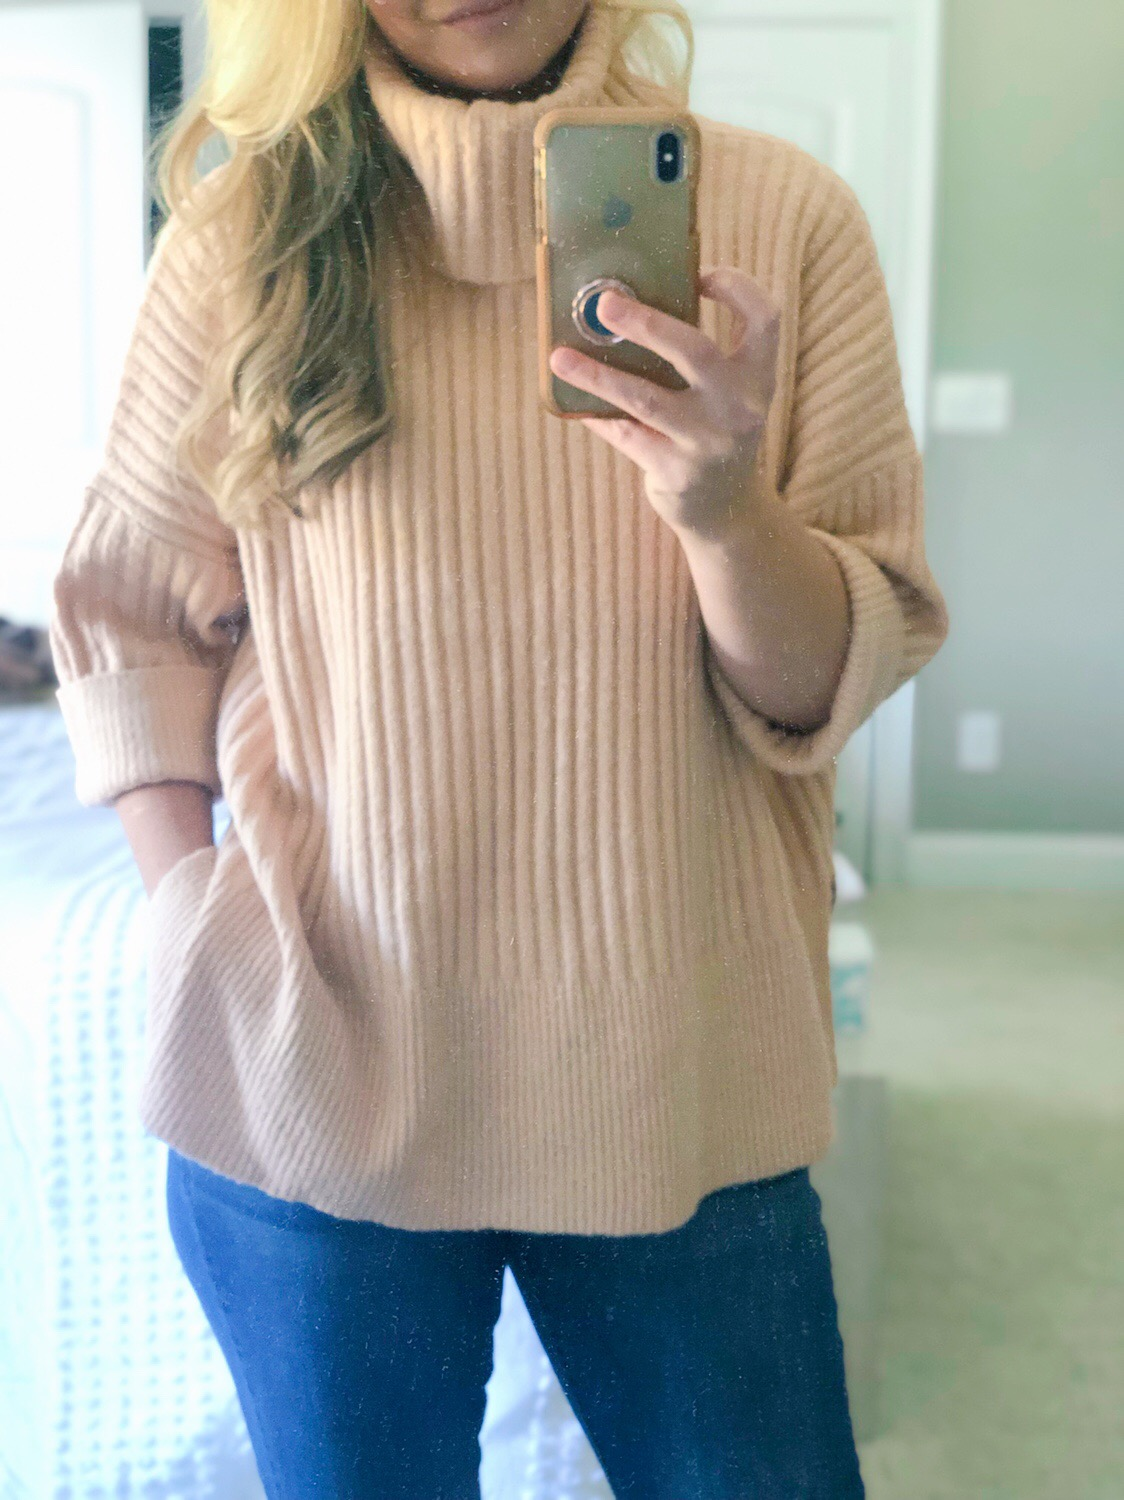 Target Outfits- Fall Clothing - Outfits for Fall -Target Try-On Session , Misty Nelson @frostedevents Frosted Blog